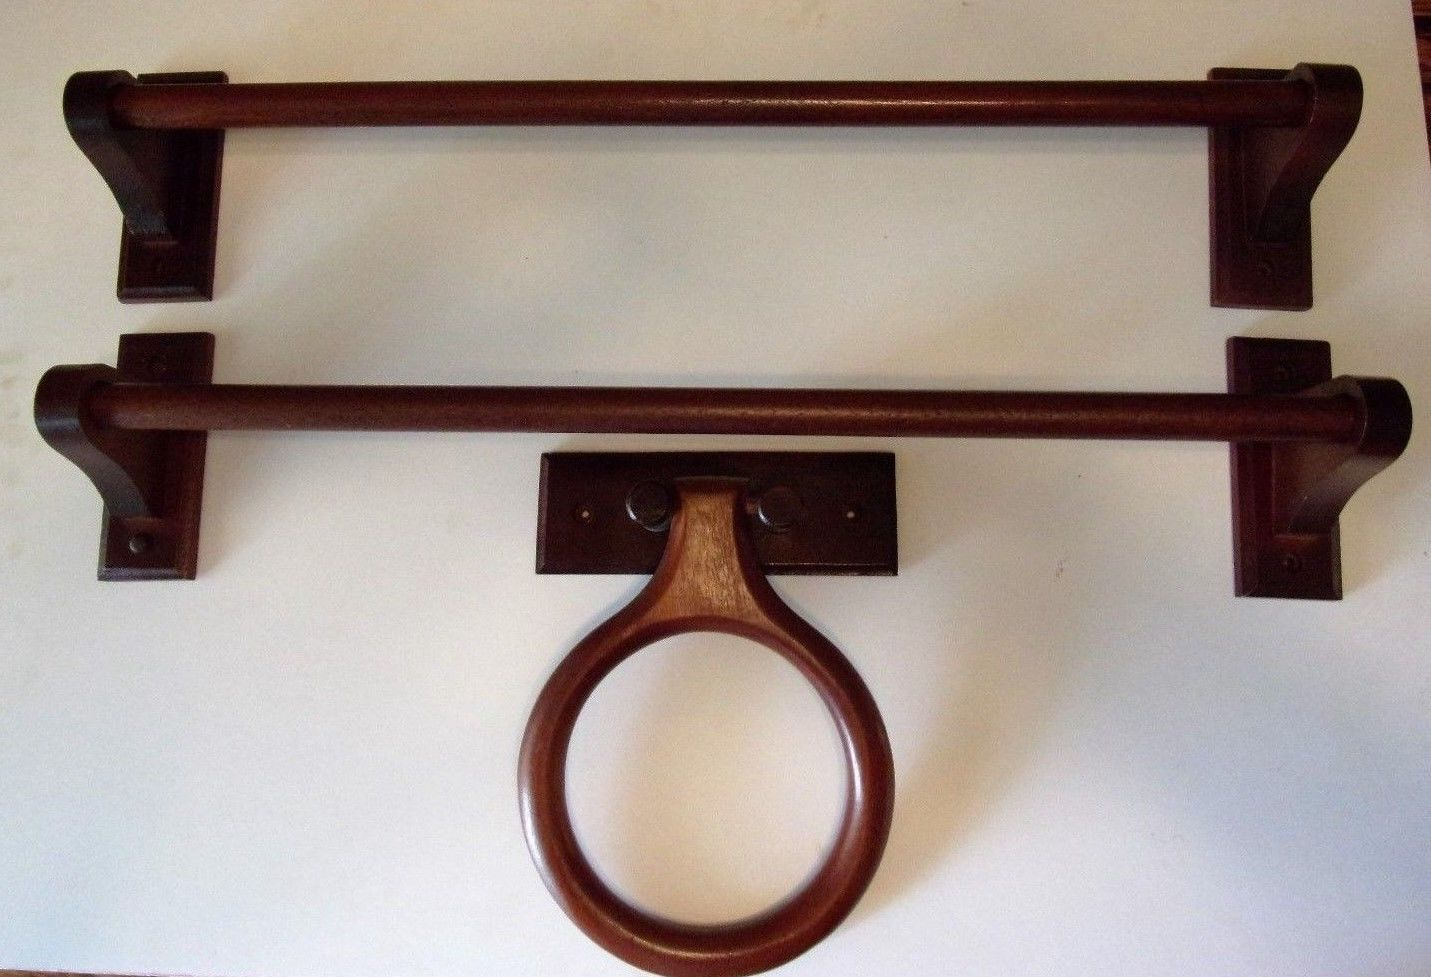 3 wood #bathroom #towel #racks lot,  View more on the LINK: 	http://www.zeppy.io/product/gb/2/331993617364/